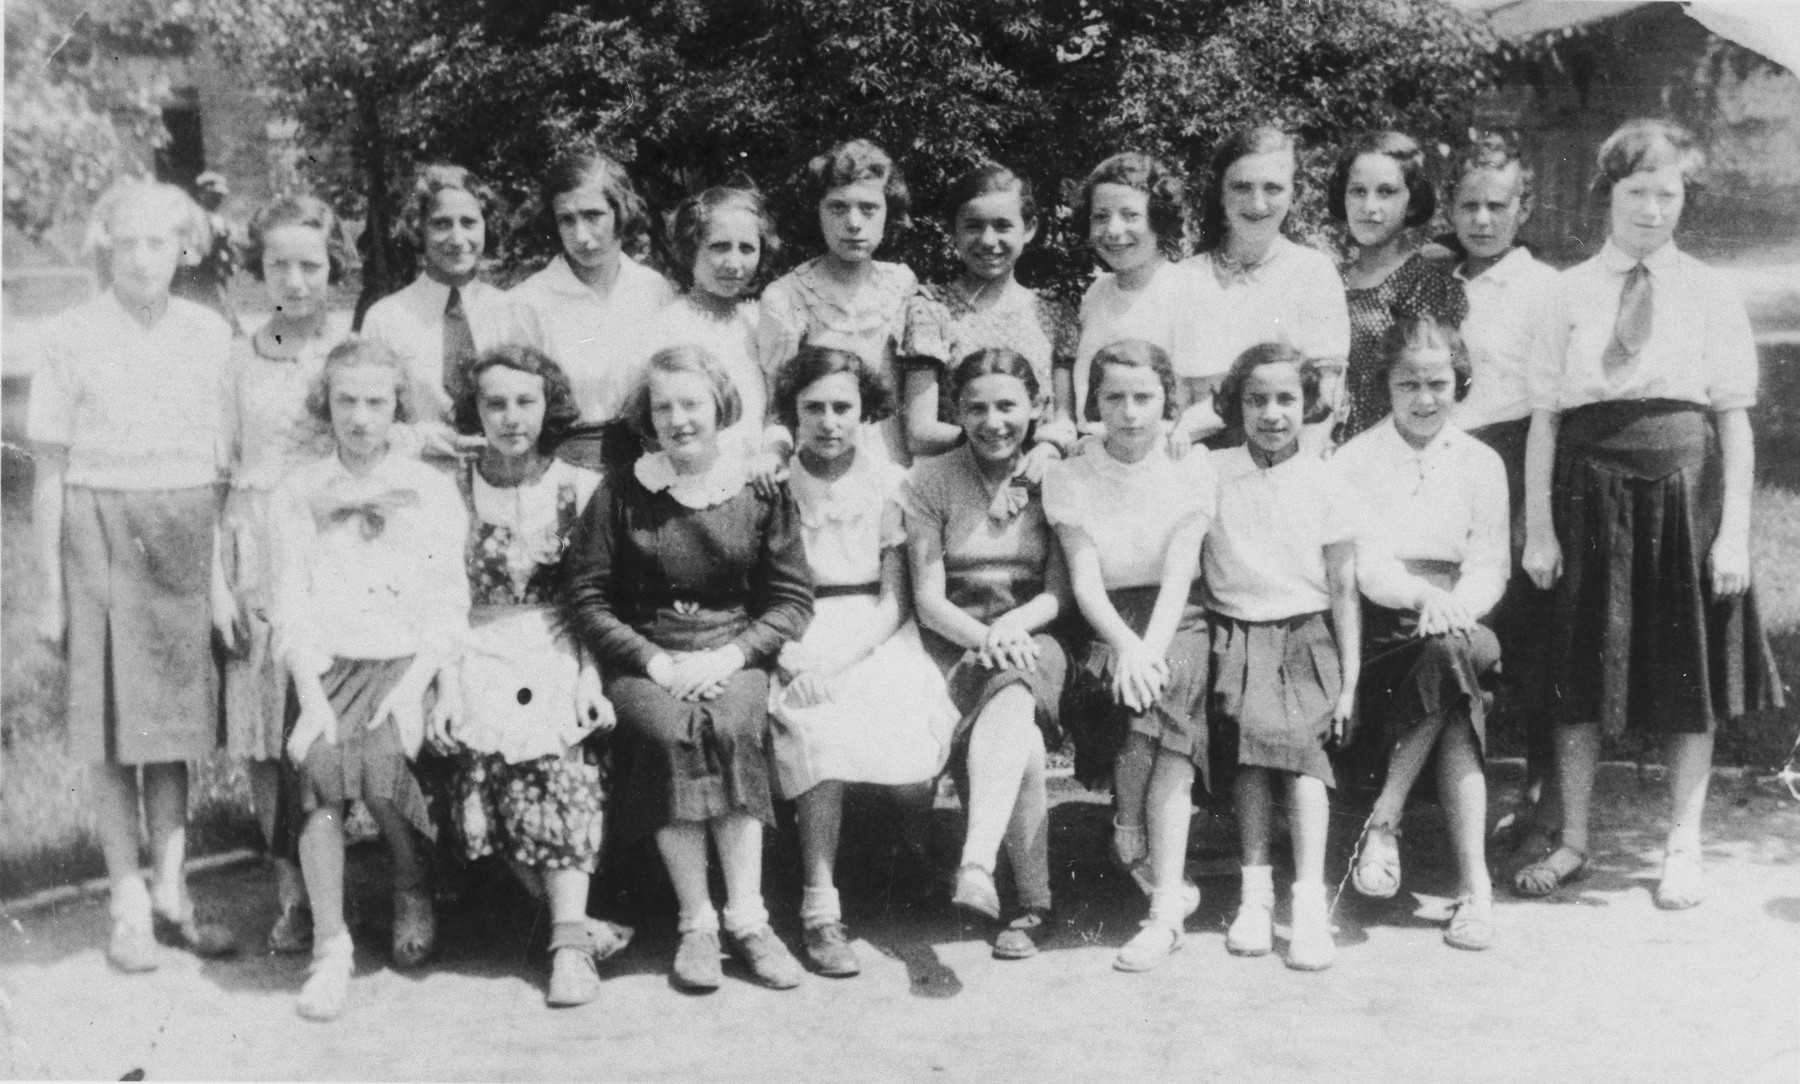 Class portrait of 7th grade students at a Jewish public school in Sosnowiec.    Pictured in the front row (left to right) is unknown; Lusia Szpiro; unknown; ? Borensztajn; unknown; Jadzia Szyjewicz; Mania Zaks; and Edzia Bank. Standing in the back row is Rutka Rabino (sixth from the left) and Helen Glejtman (fourth from the right).